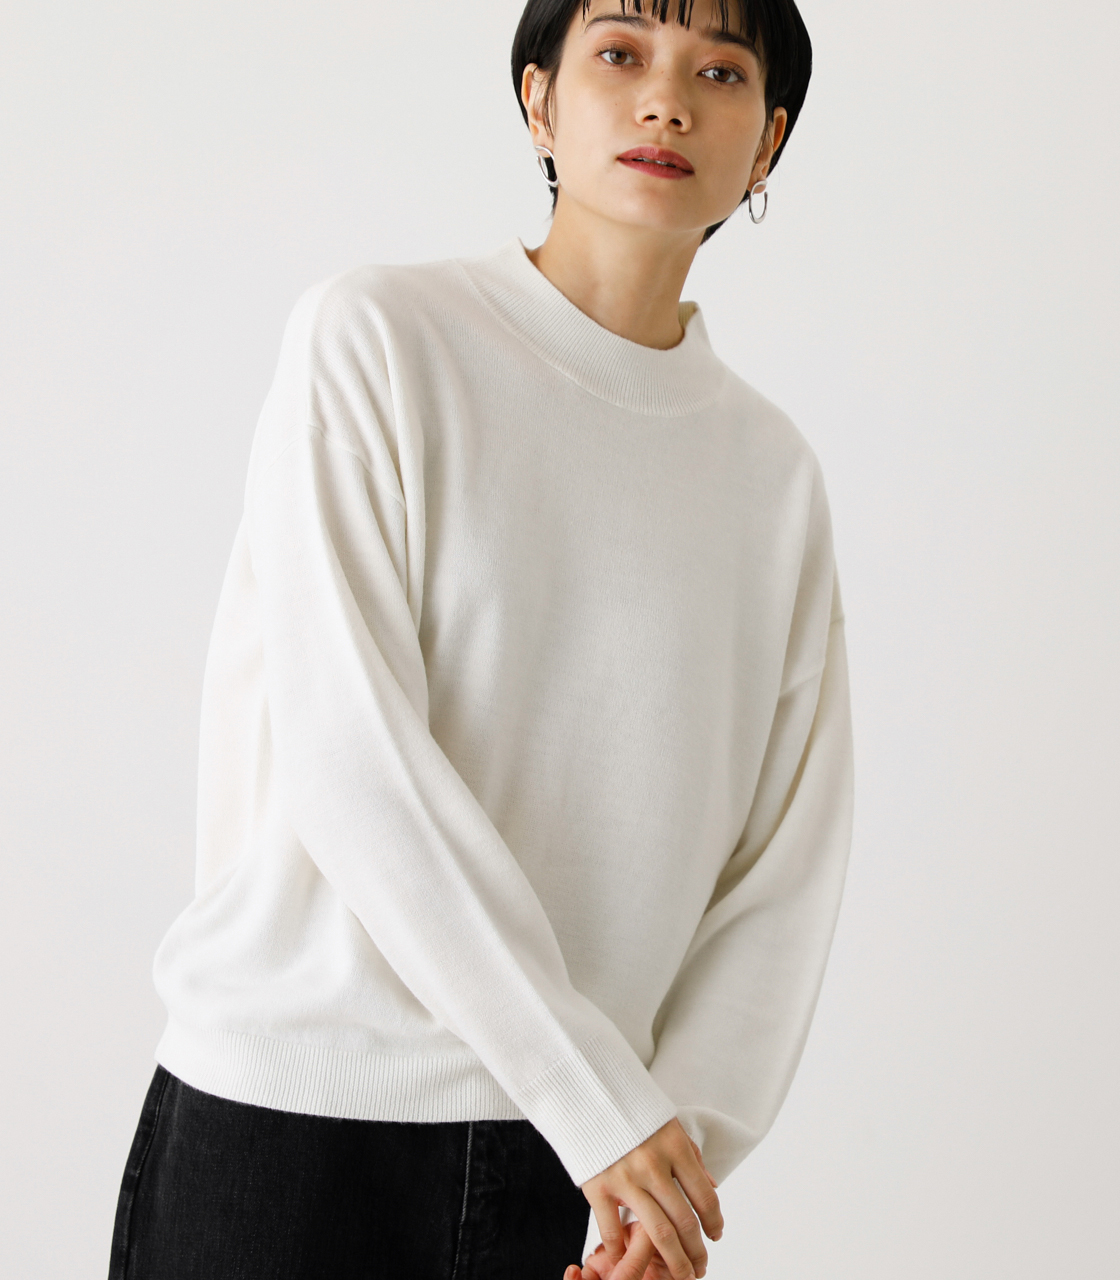 NUDIE H/N KNIT TOPS/ヌーディーハイネックニットトップス【MOOK53掲載 90022】 詳細画像 O/WHT 1